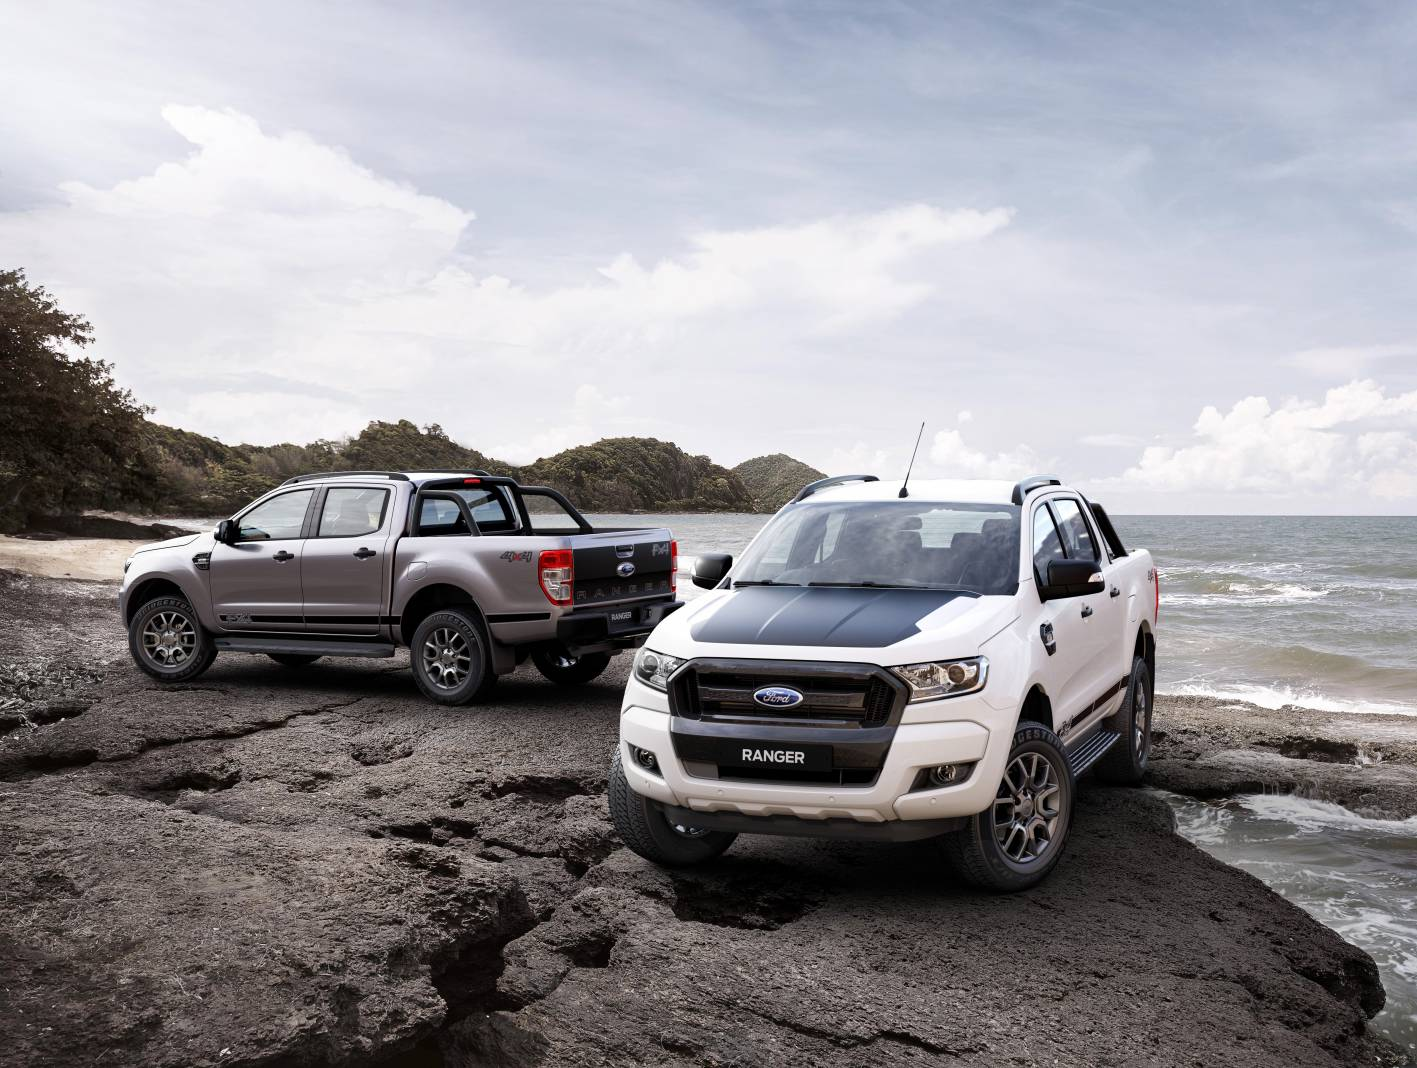 Ford Ranger recalled due to possible fire risk